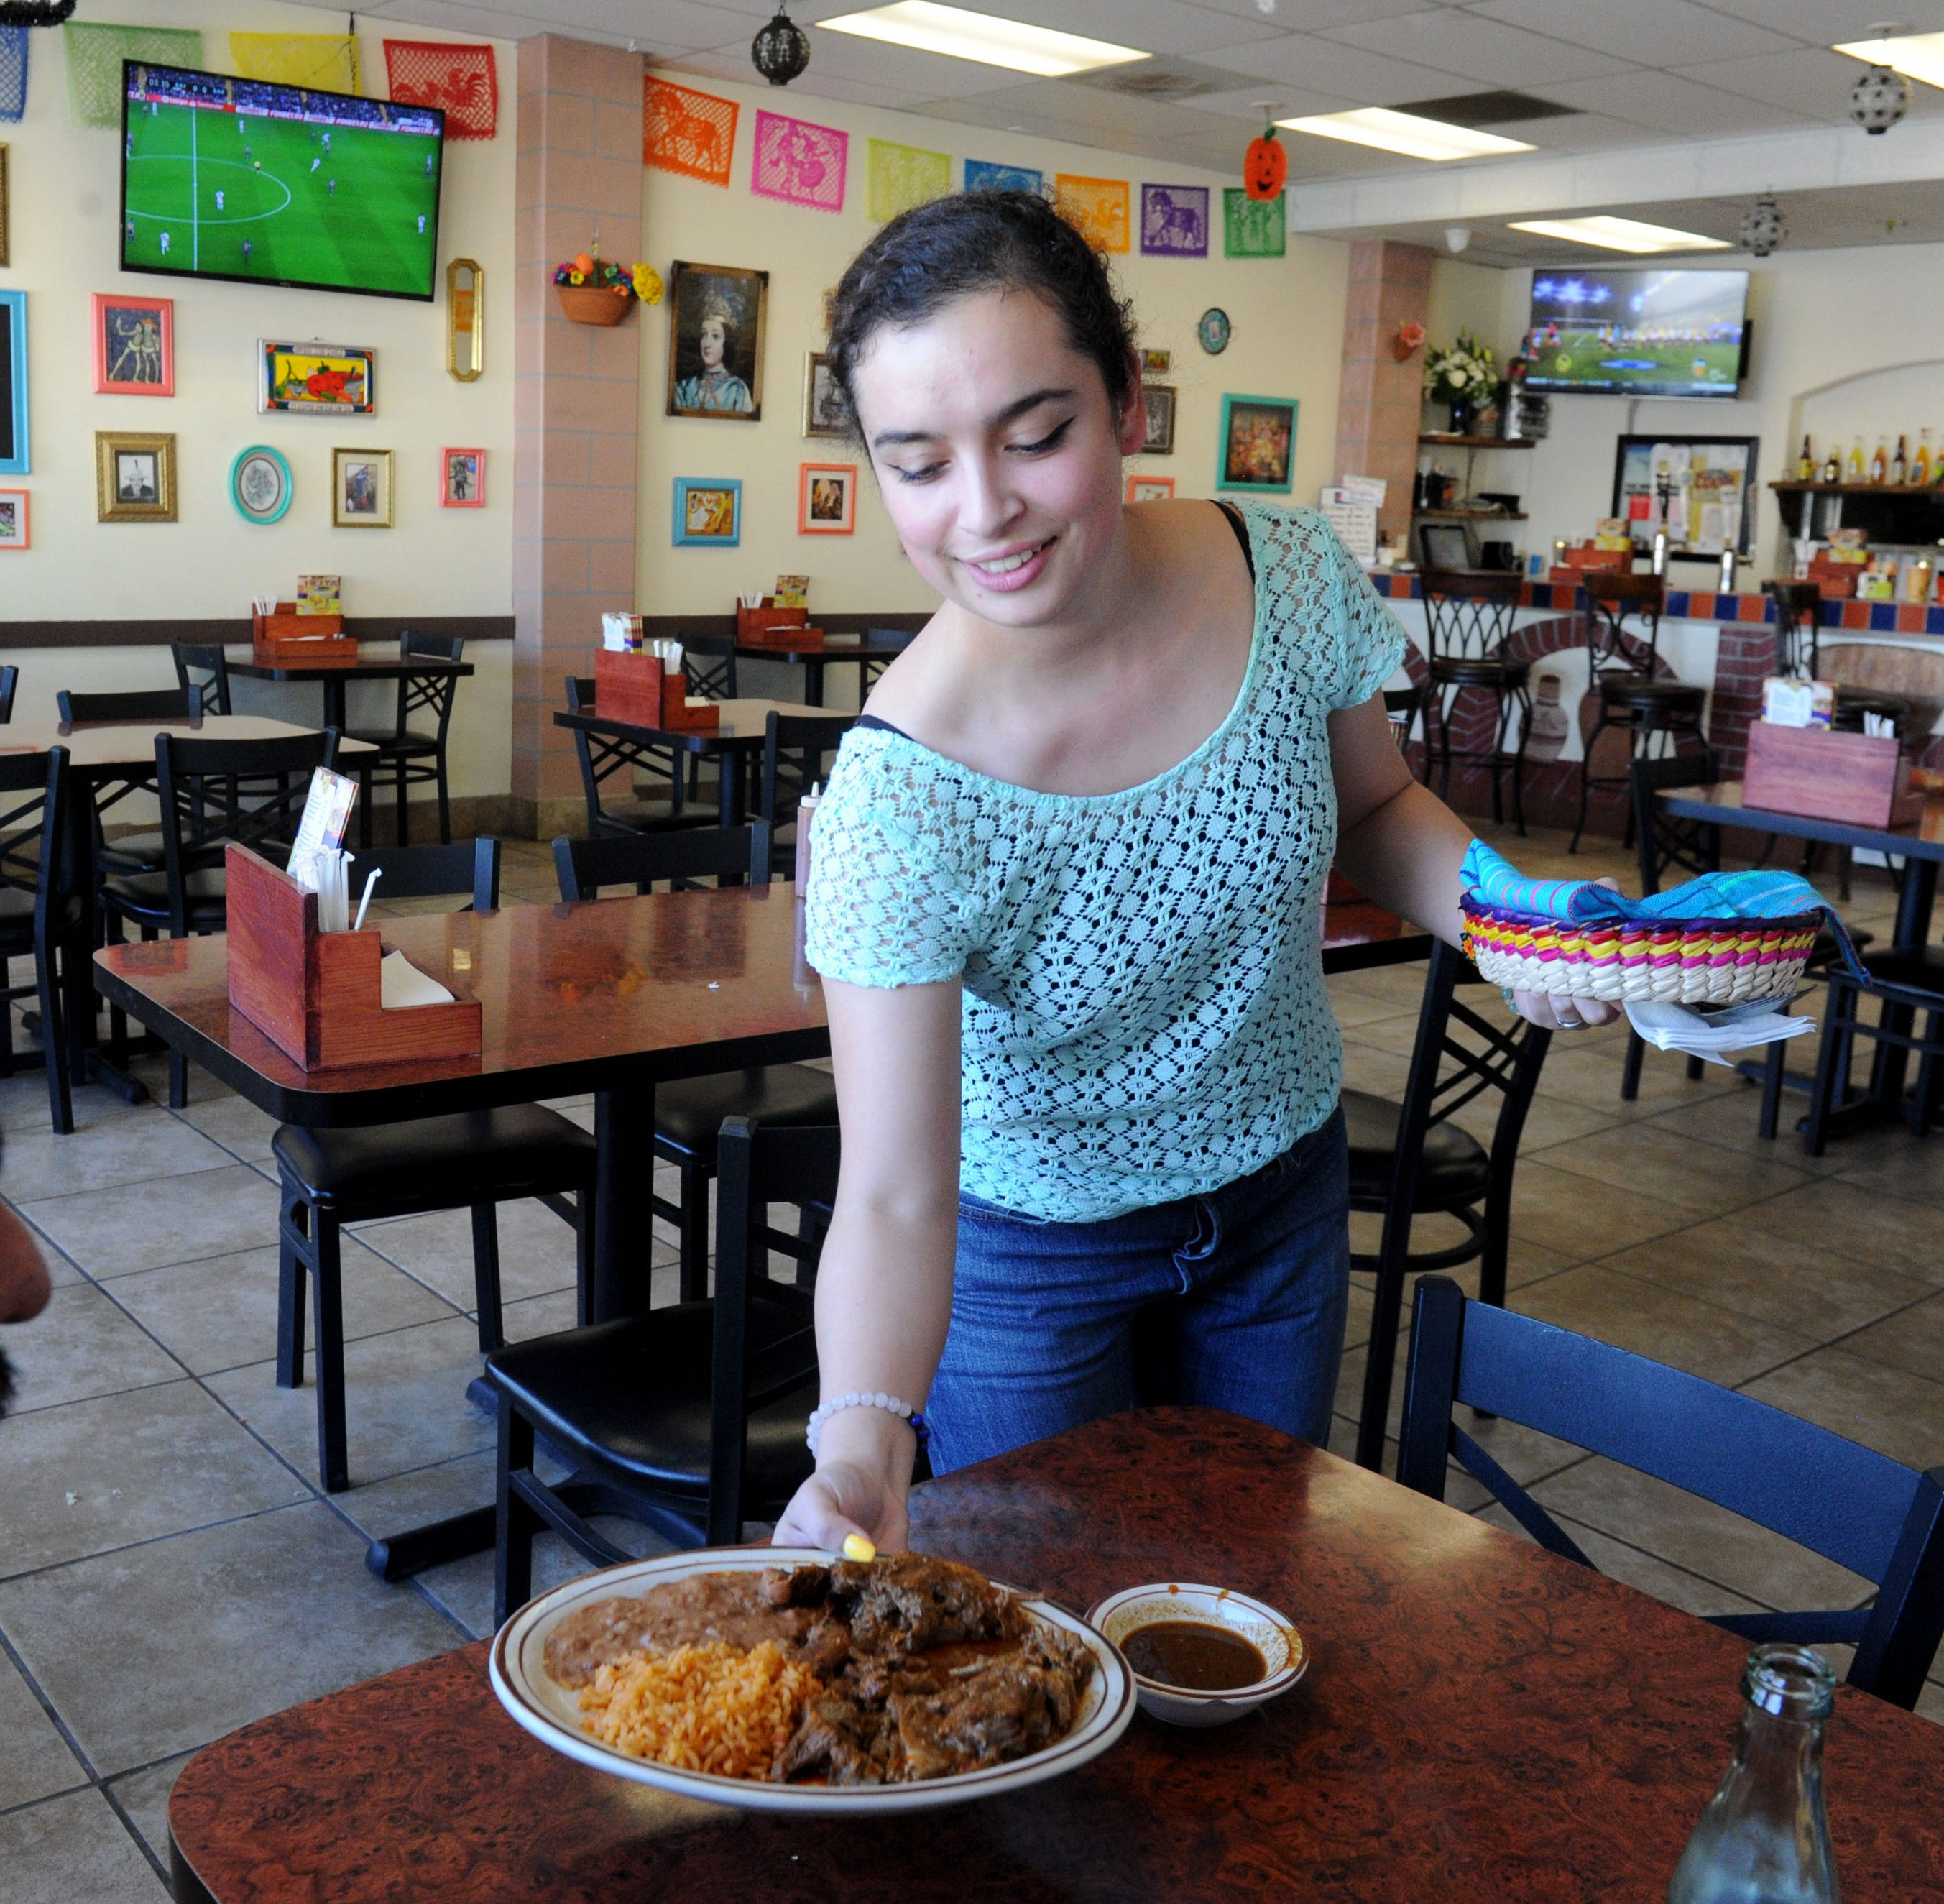 Restaurant Review: At Fiesta Mexican Grill in Oxnard the food is authentic and tasty